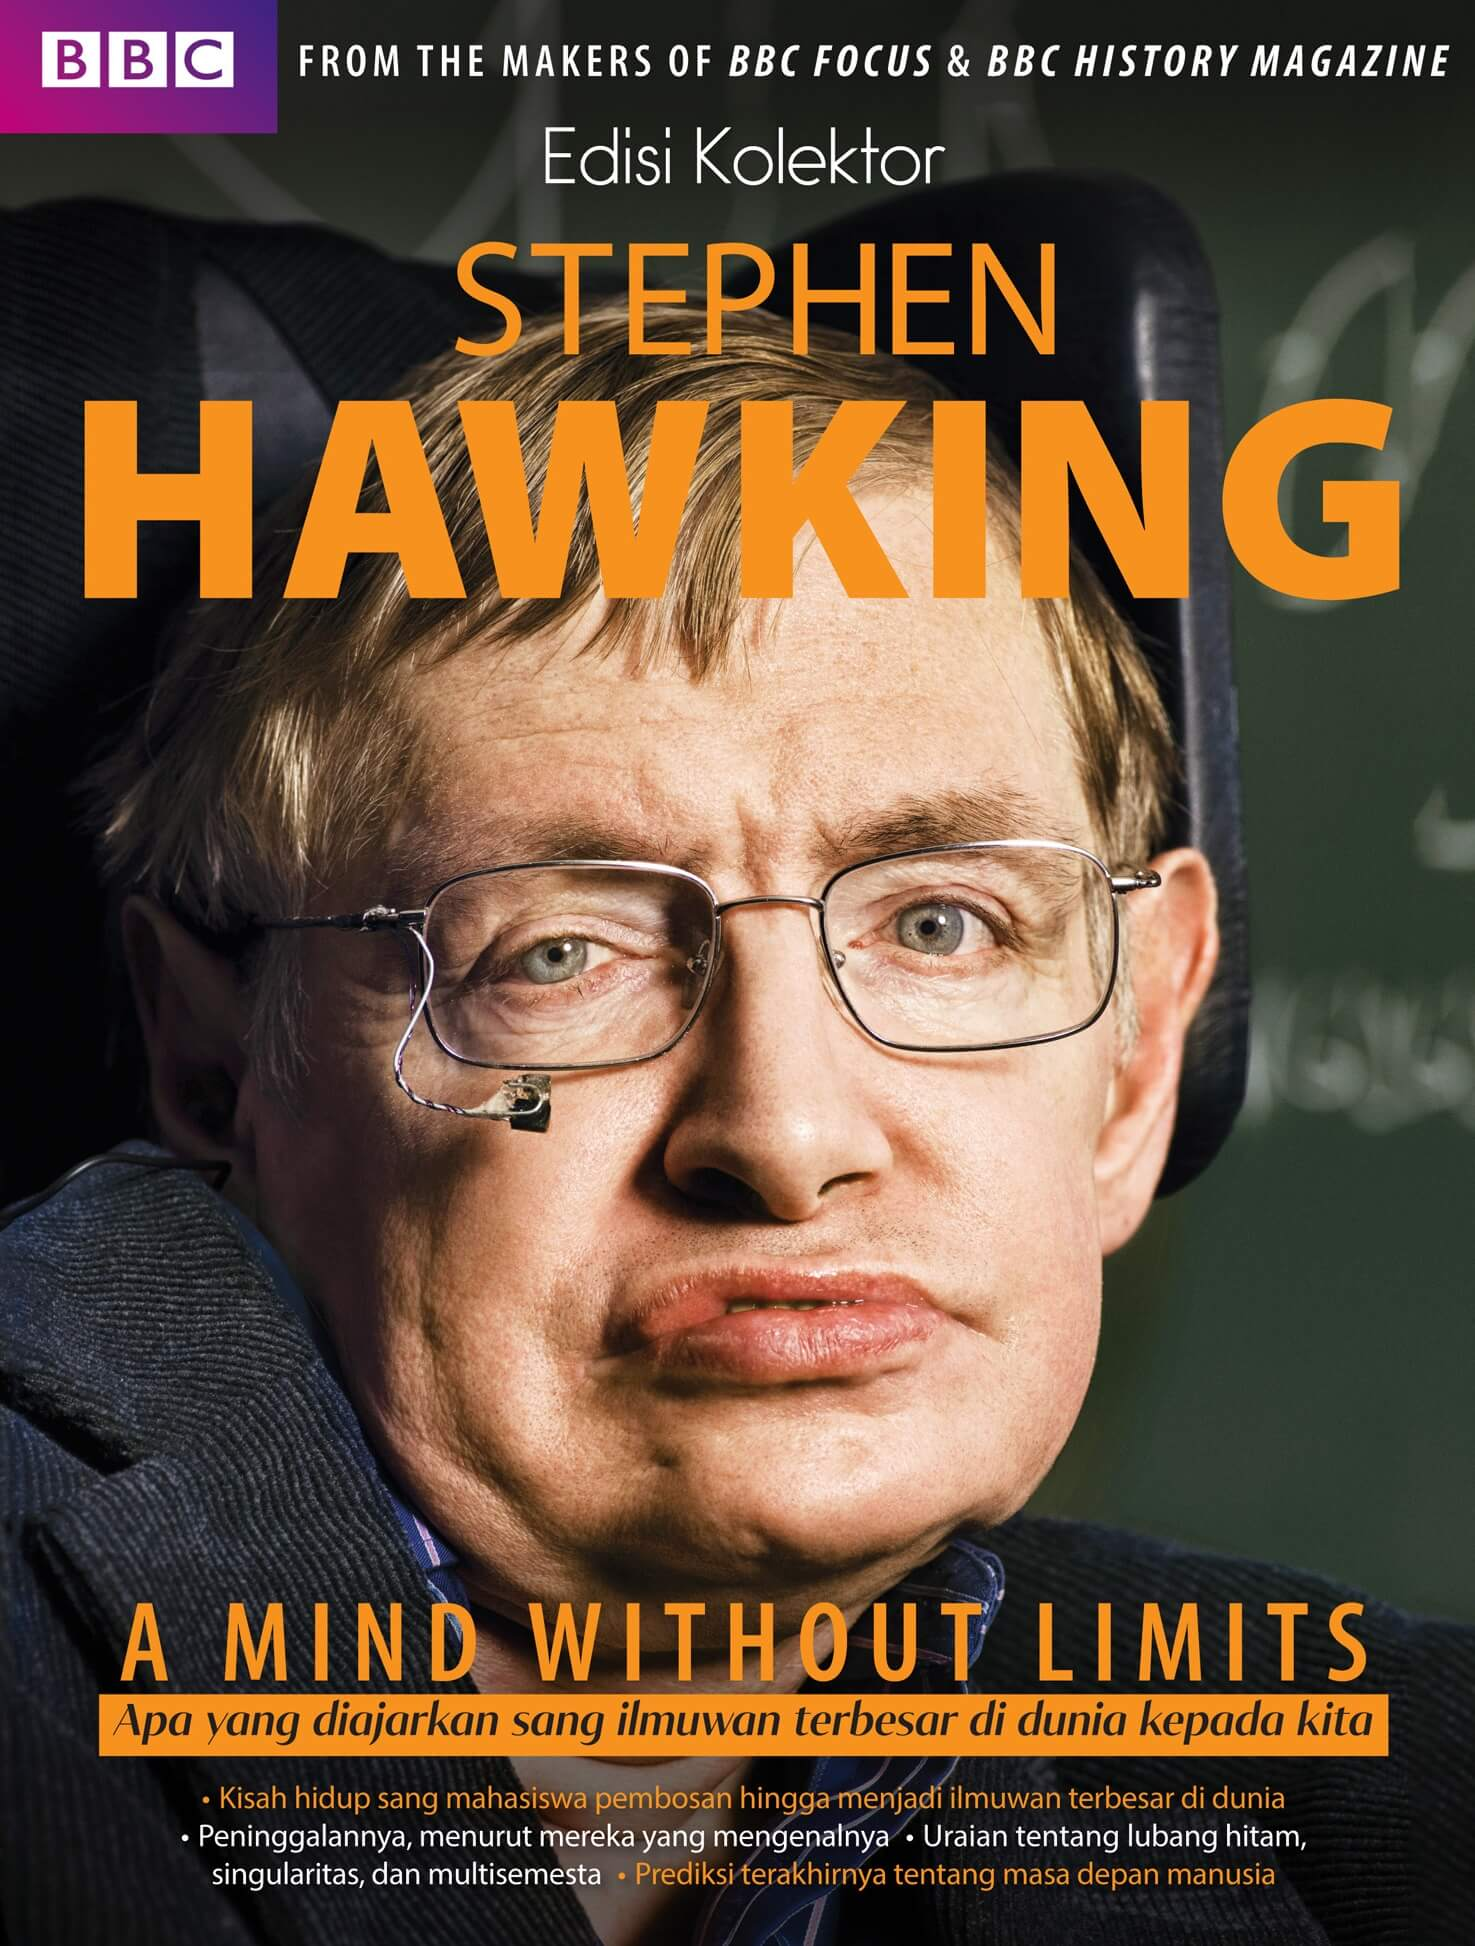 STEPHEN HAWKING: A MIND WITHOUT LIMITSen